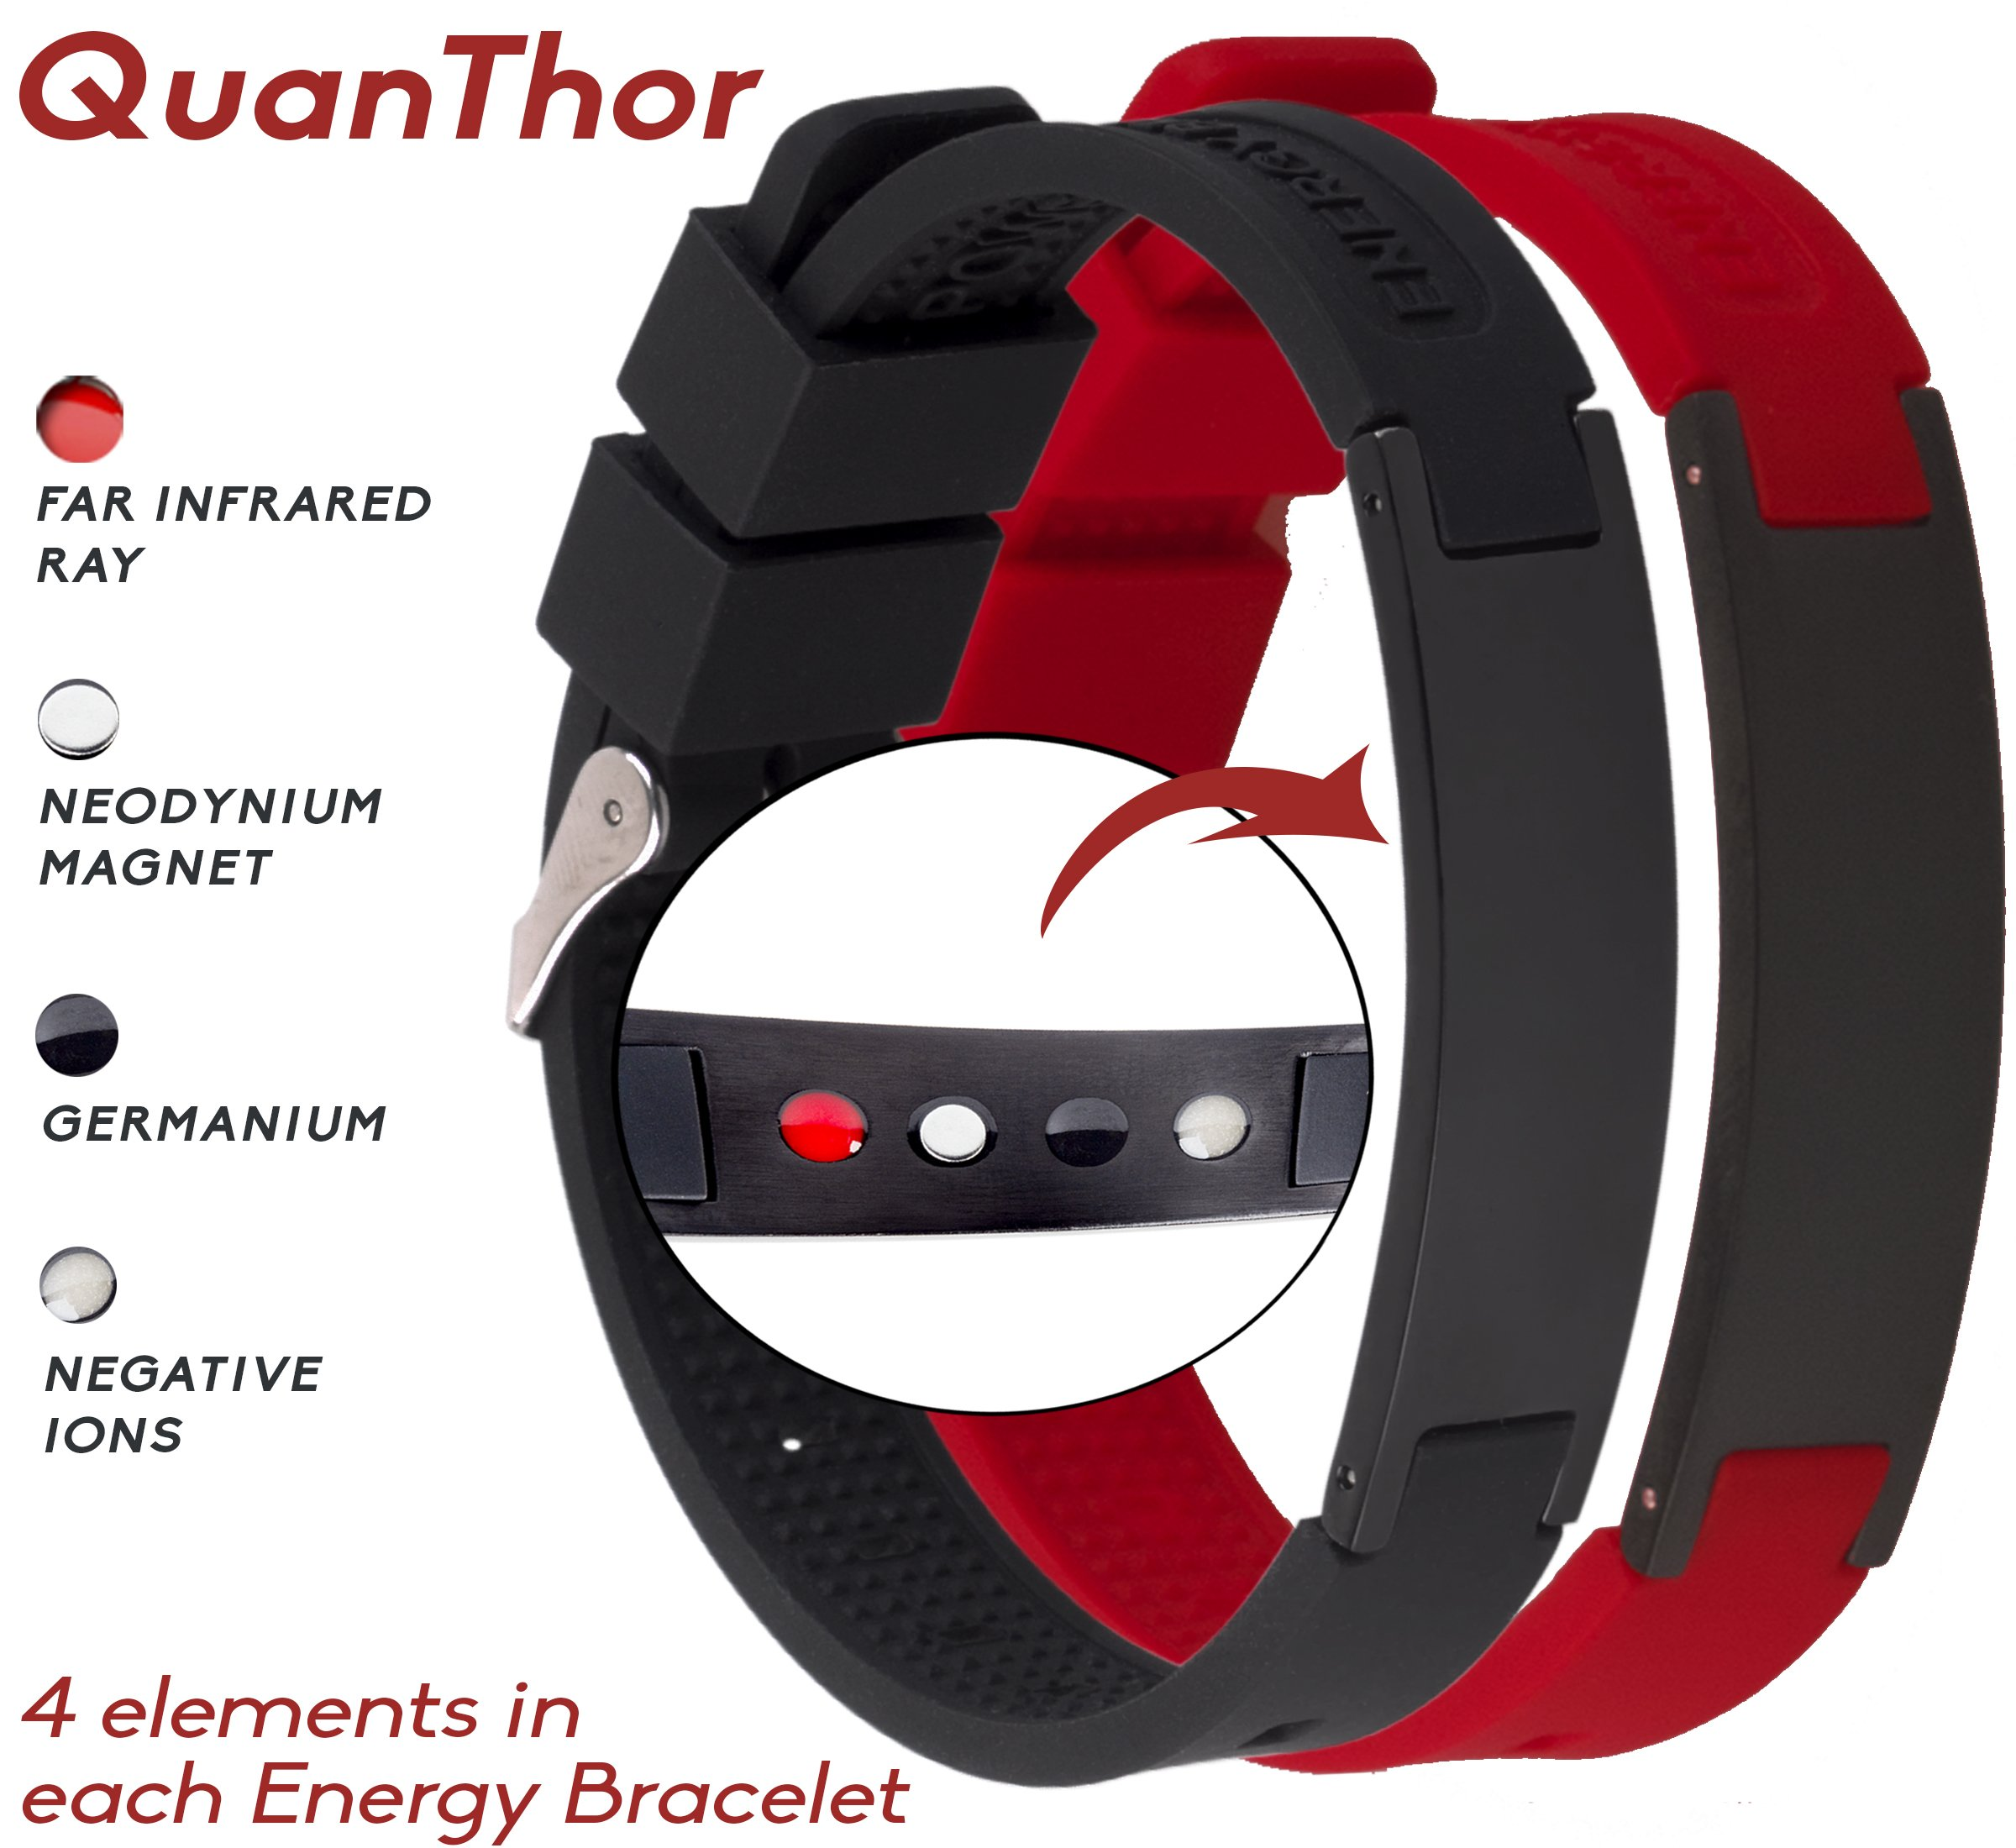 Anti EMF Radiation Protection Bracelet 4 in 1 | Negative Ions 1200, Germanium, Far Infrared and Neodymium Magnet 1500 Gauss | Arthritis Pain.Carpal Tunnel.Strengthen Immunity.Migraines by QUANTHOR